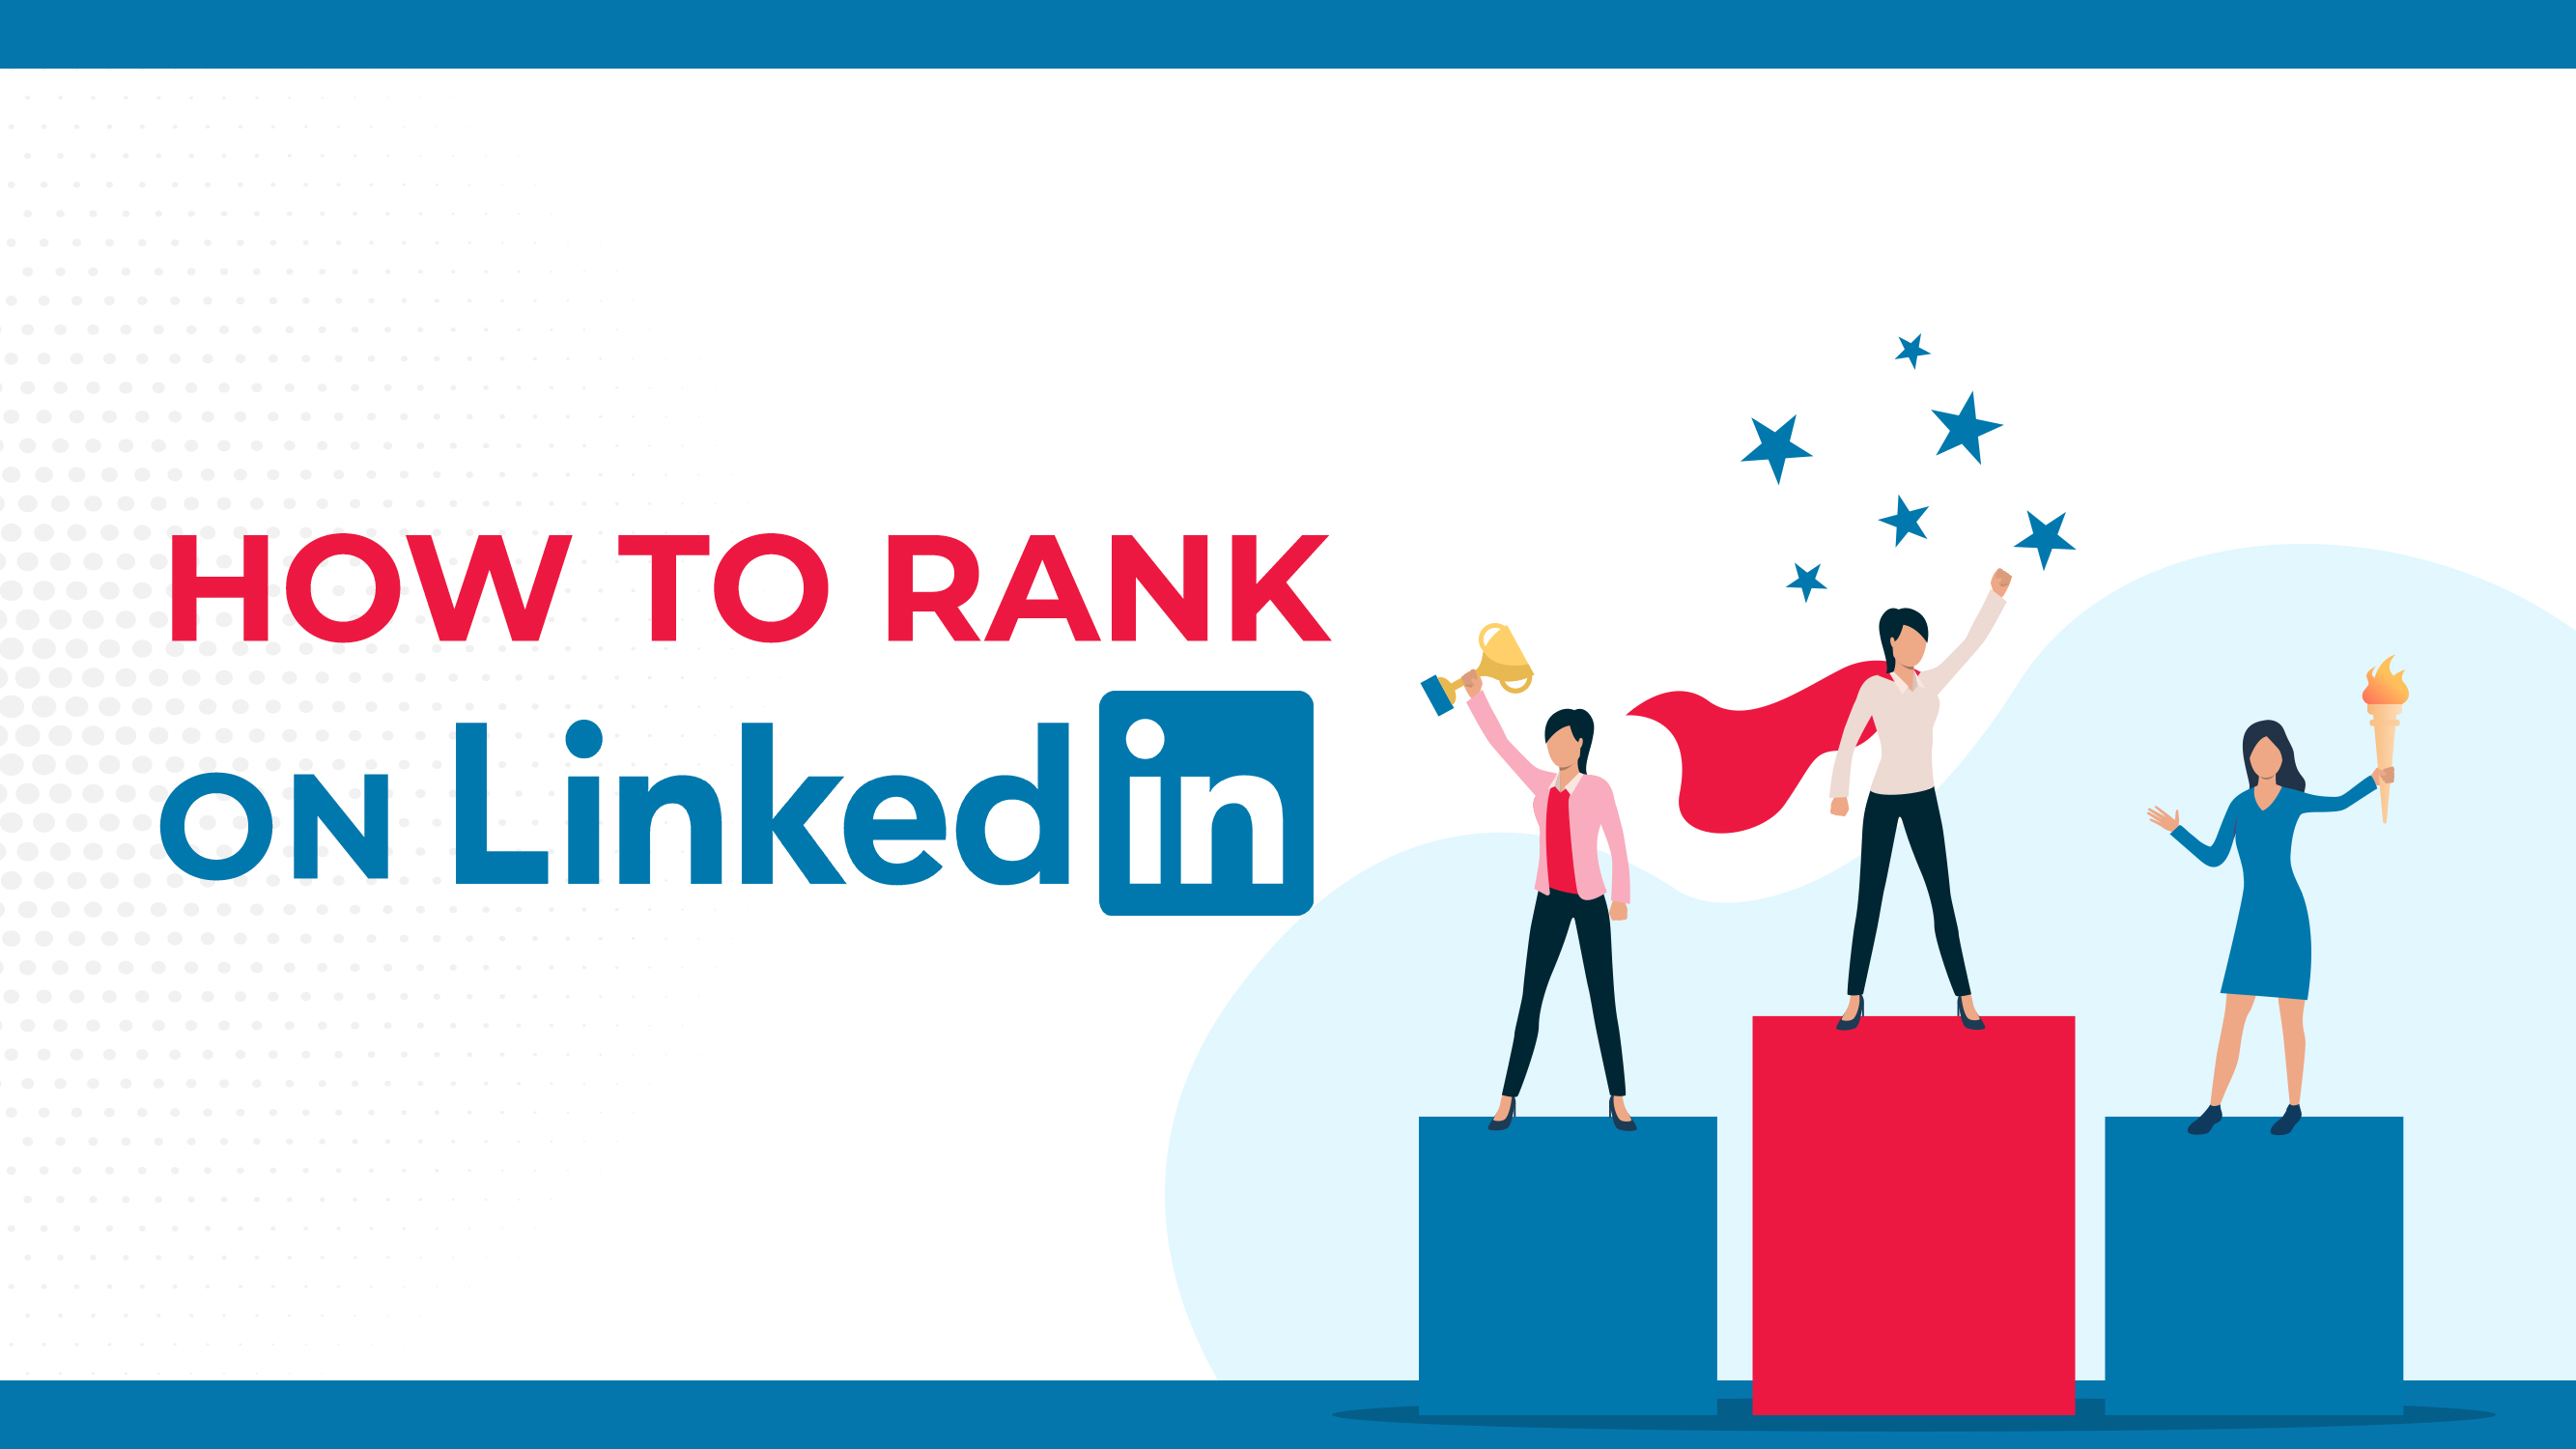 How To Rank on LinkedIn